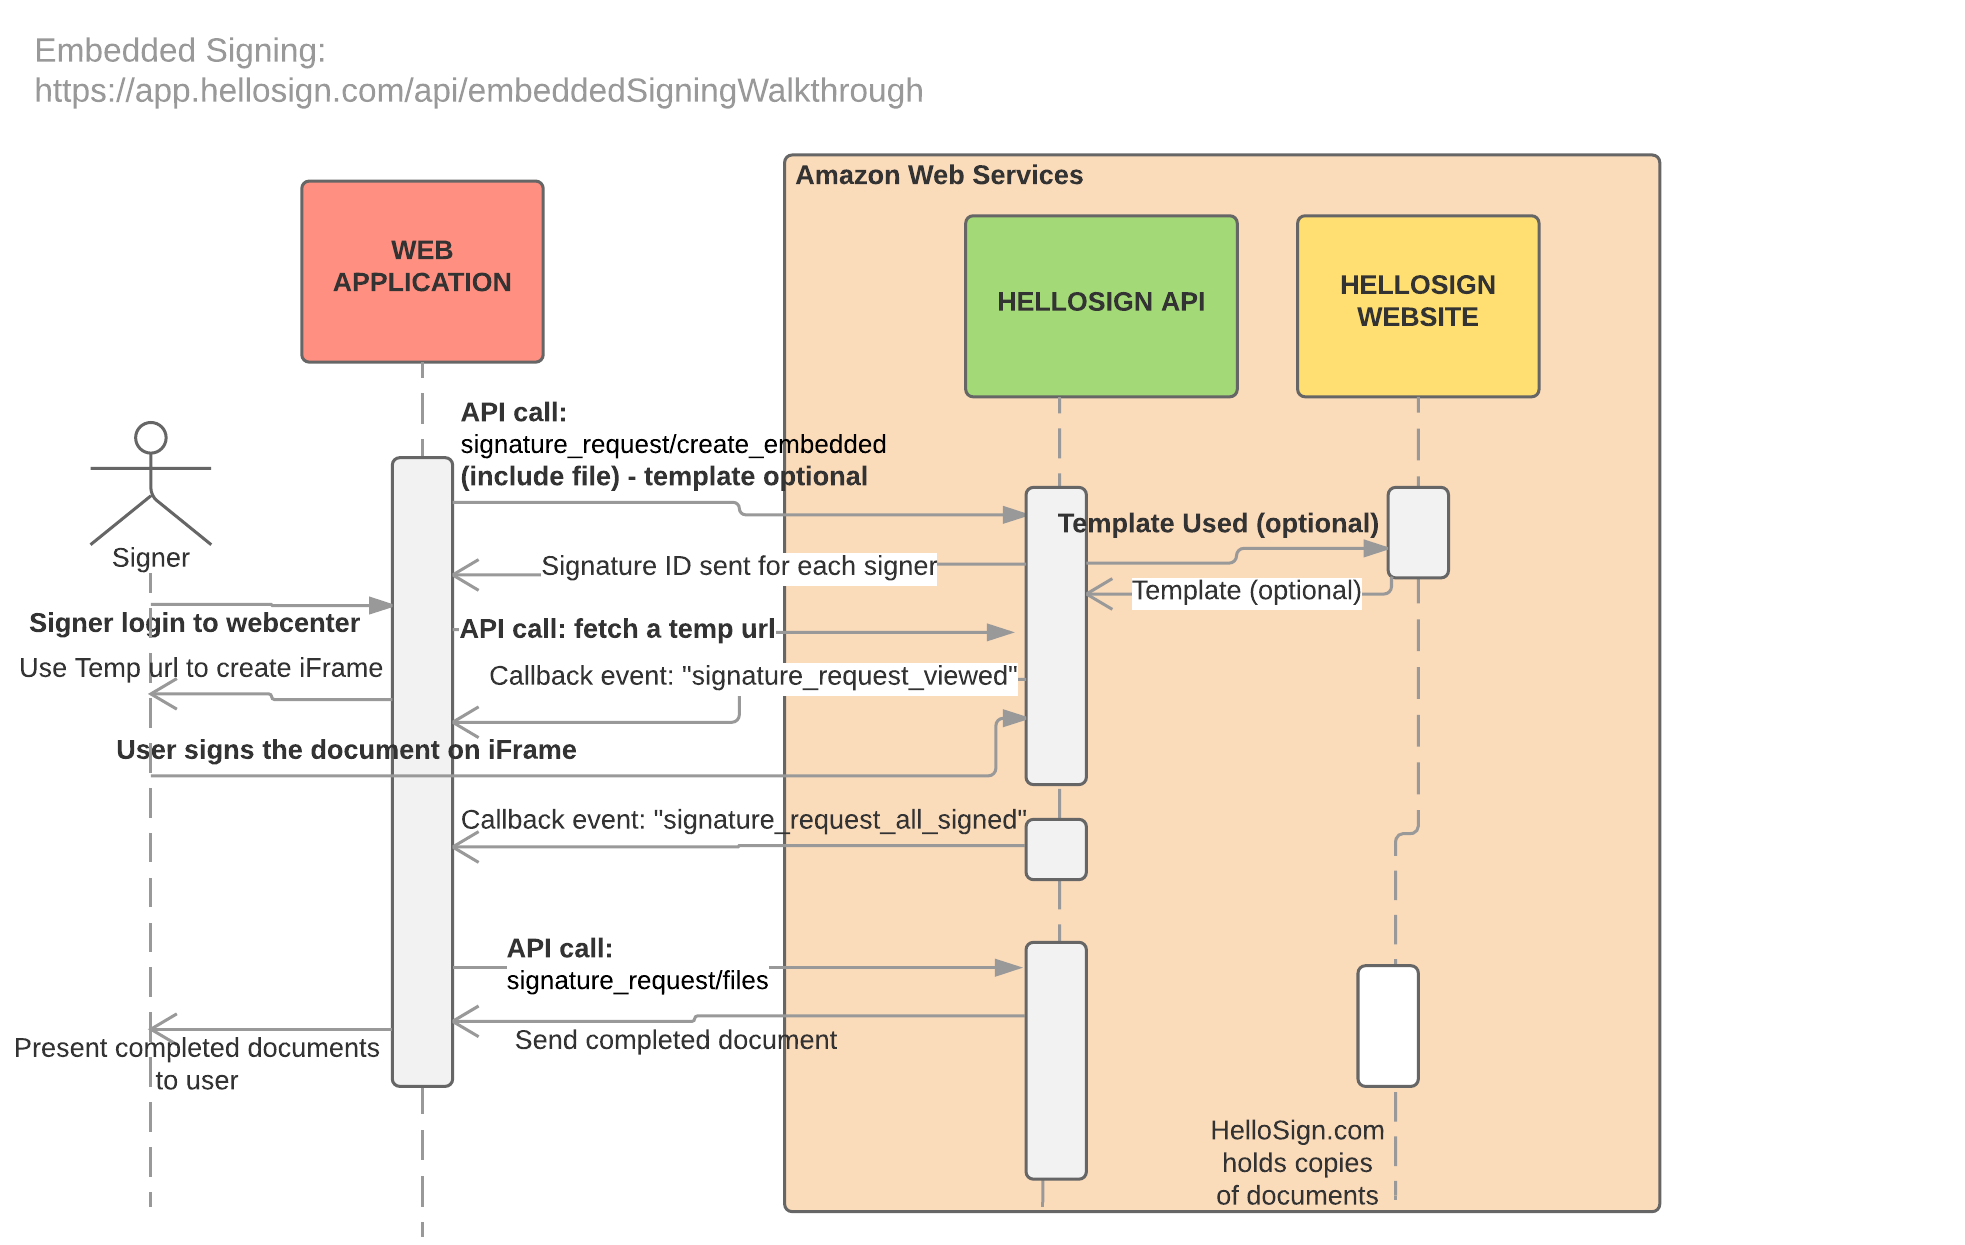 small resolution of image result for how to represent an api call in sequence diagram